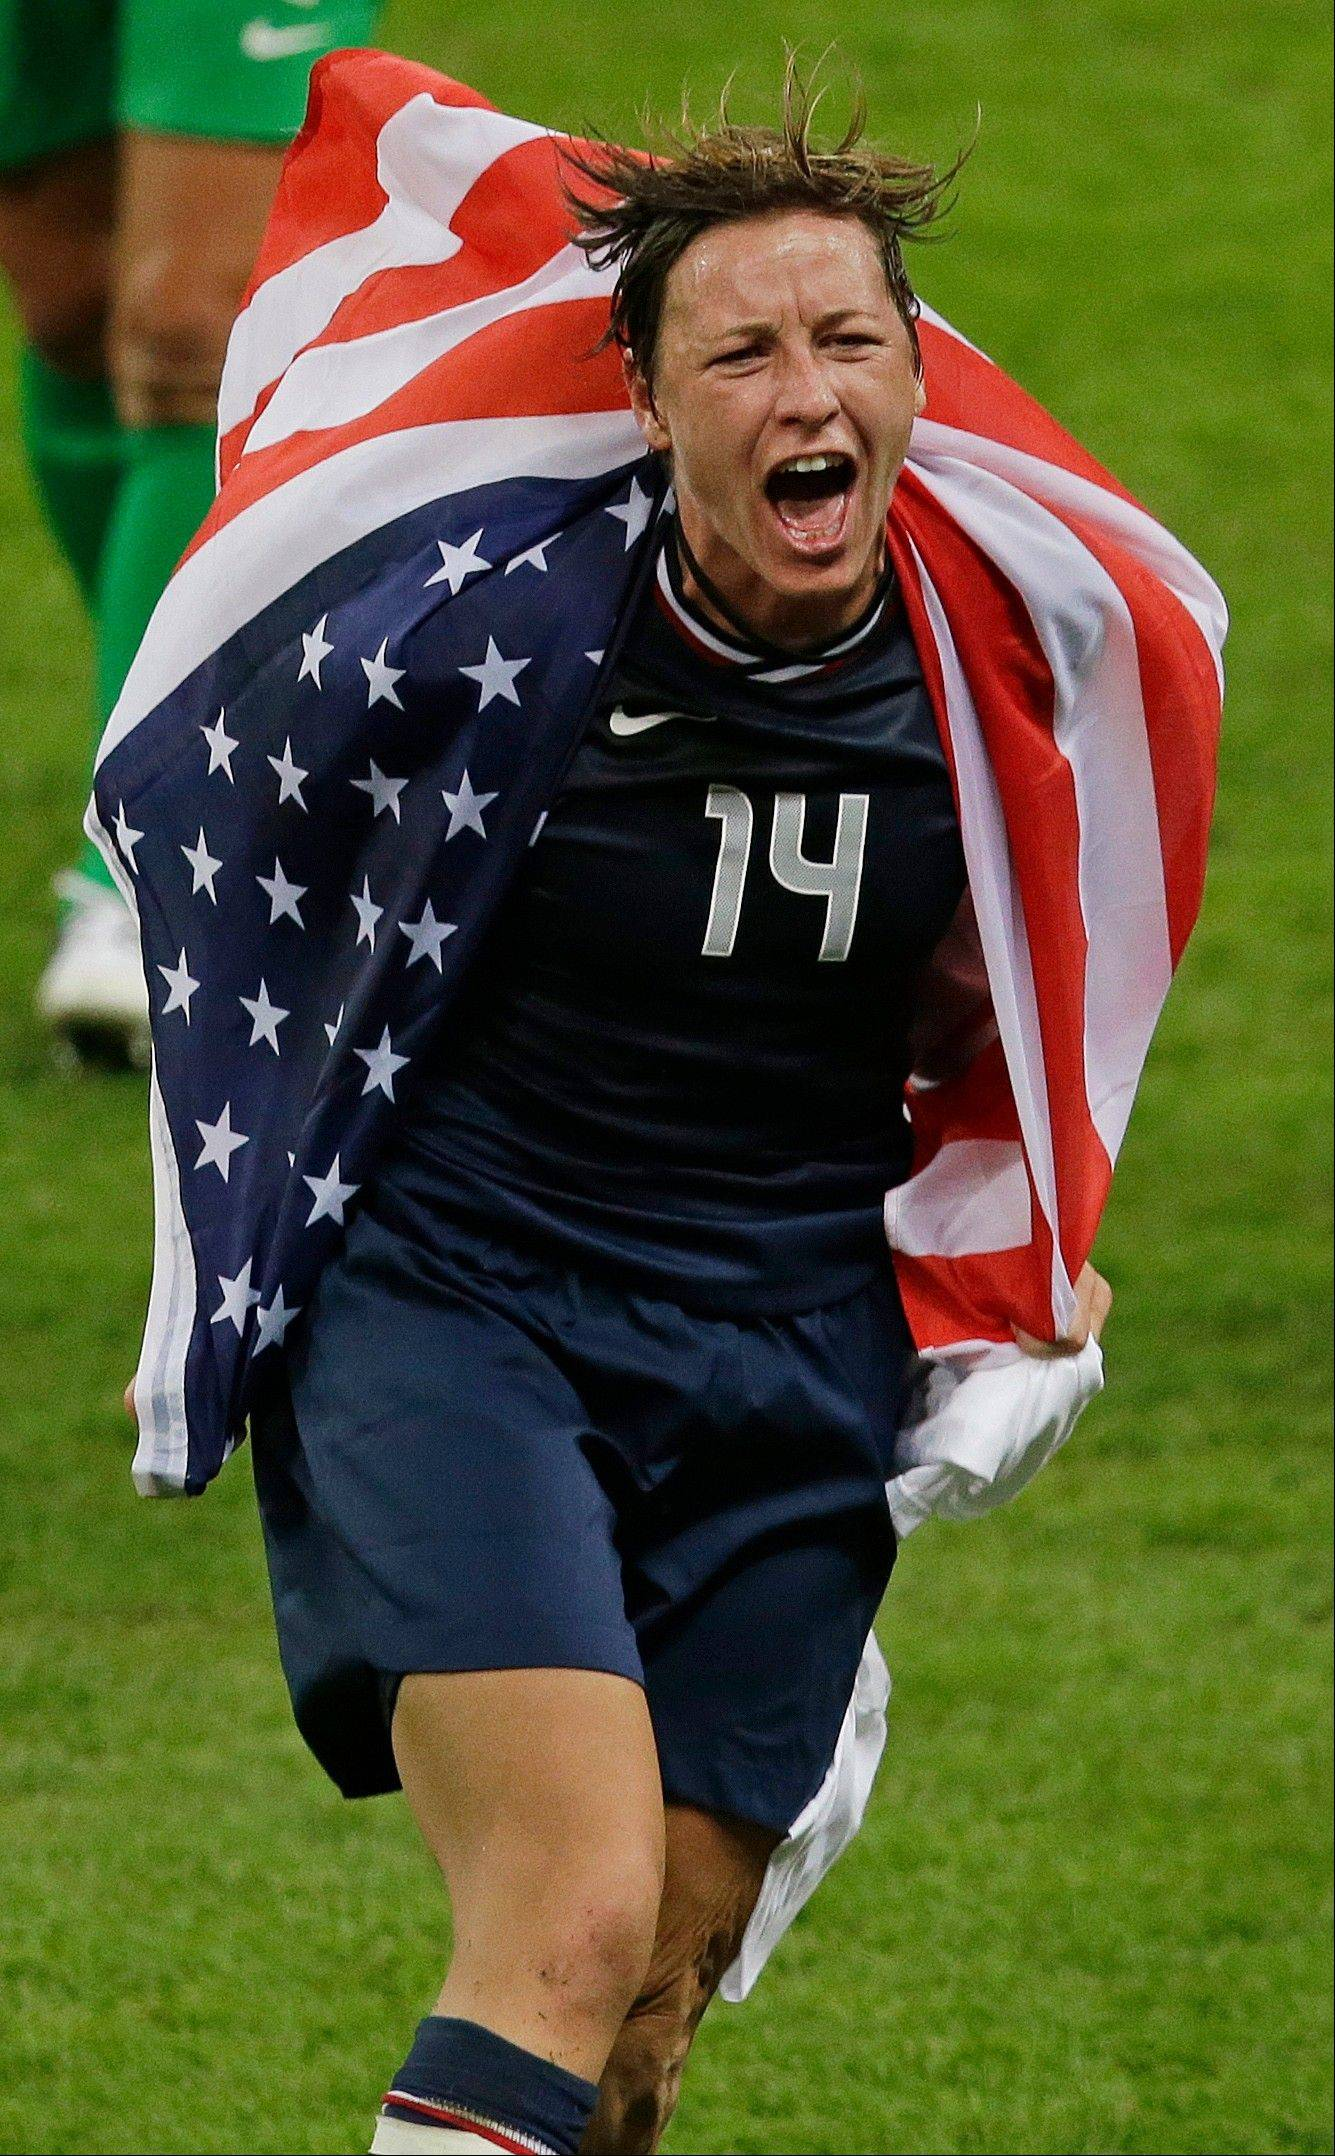 Abby Wambach has 160 international goals.